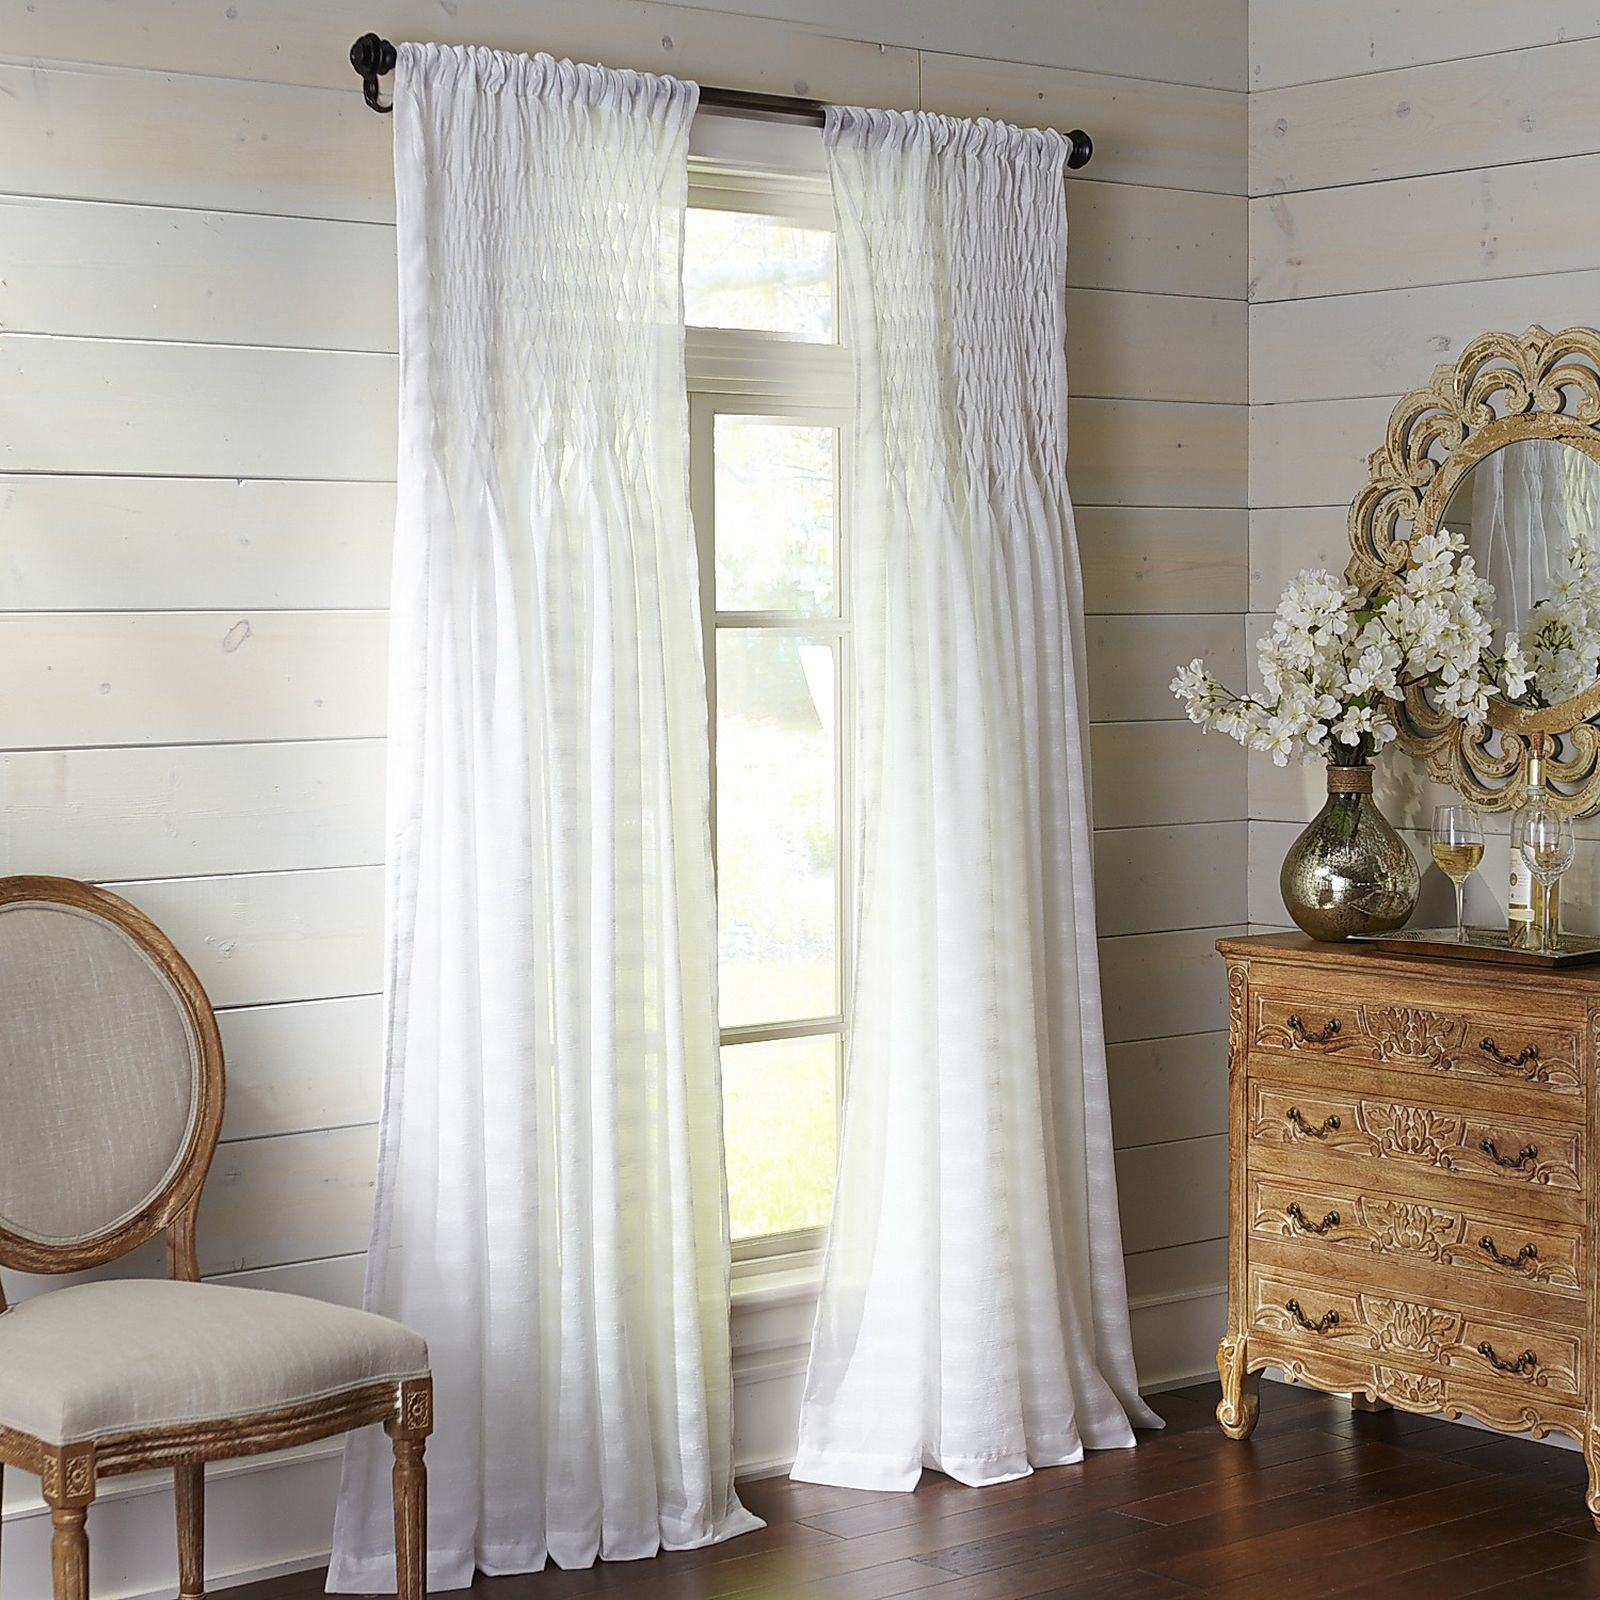 Popular window coverings  our breezy sheer panel is embellished at the top with tiny